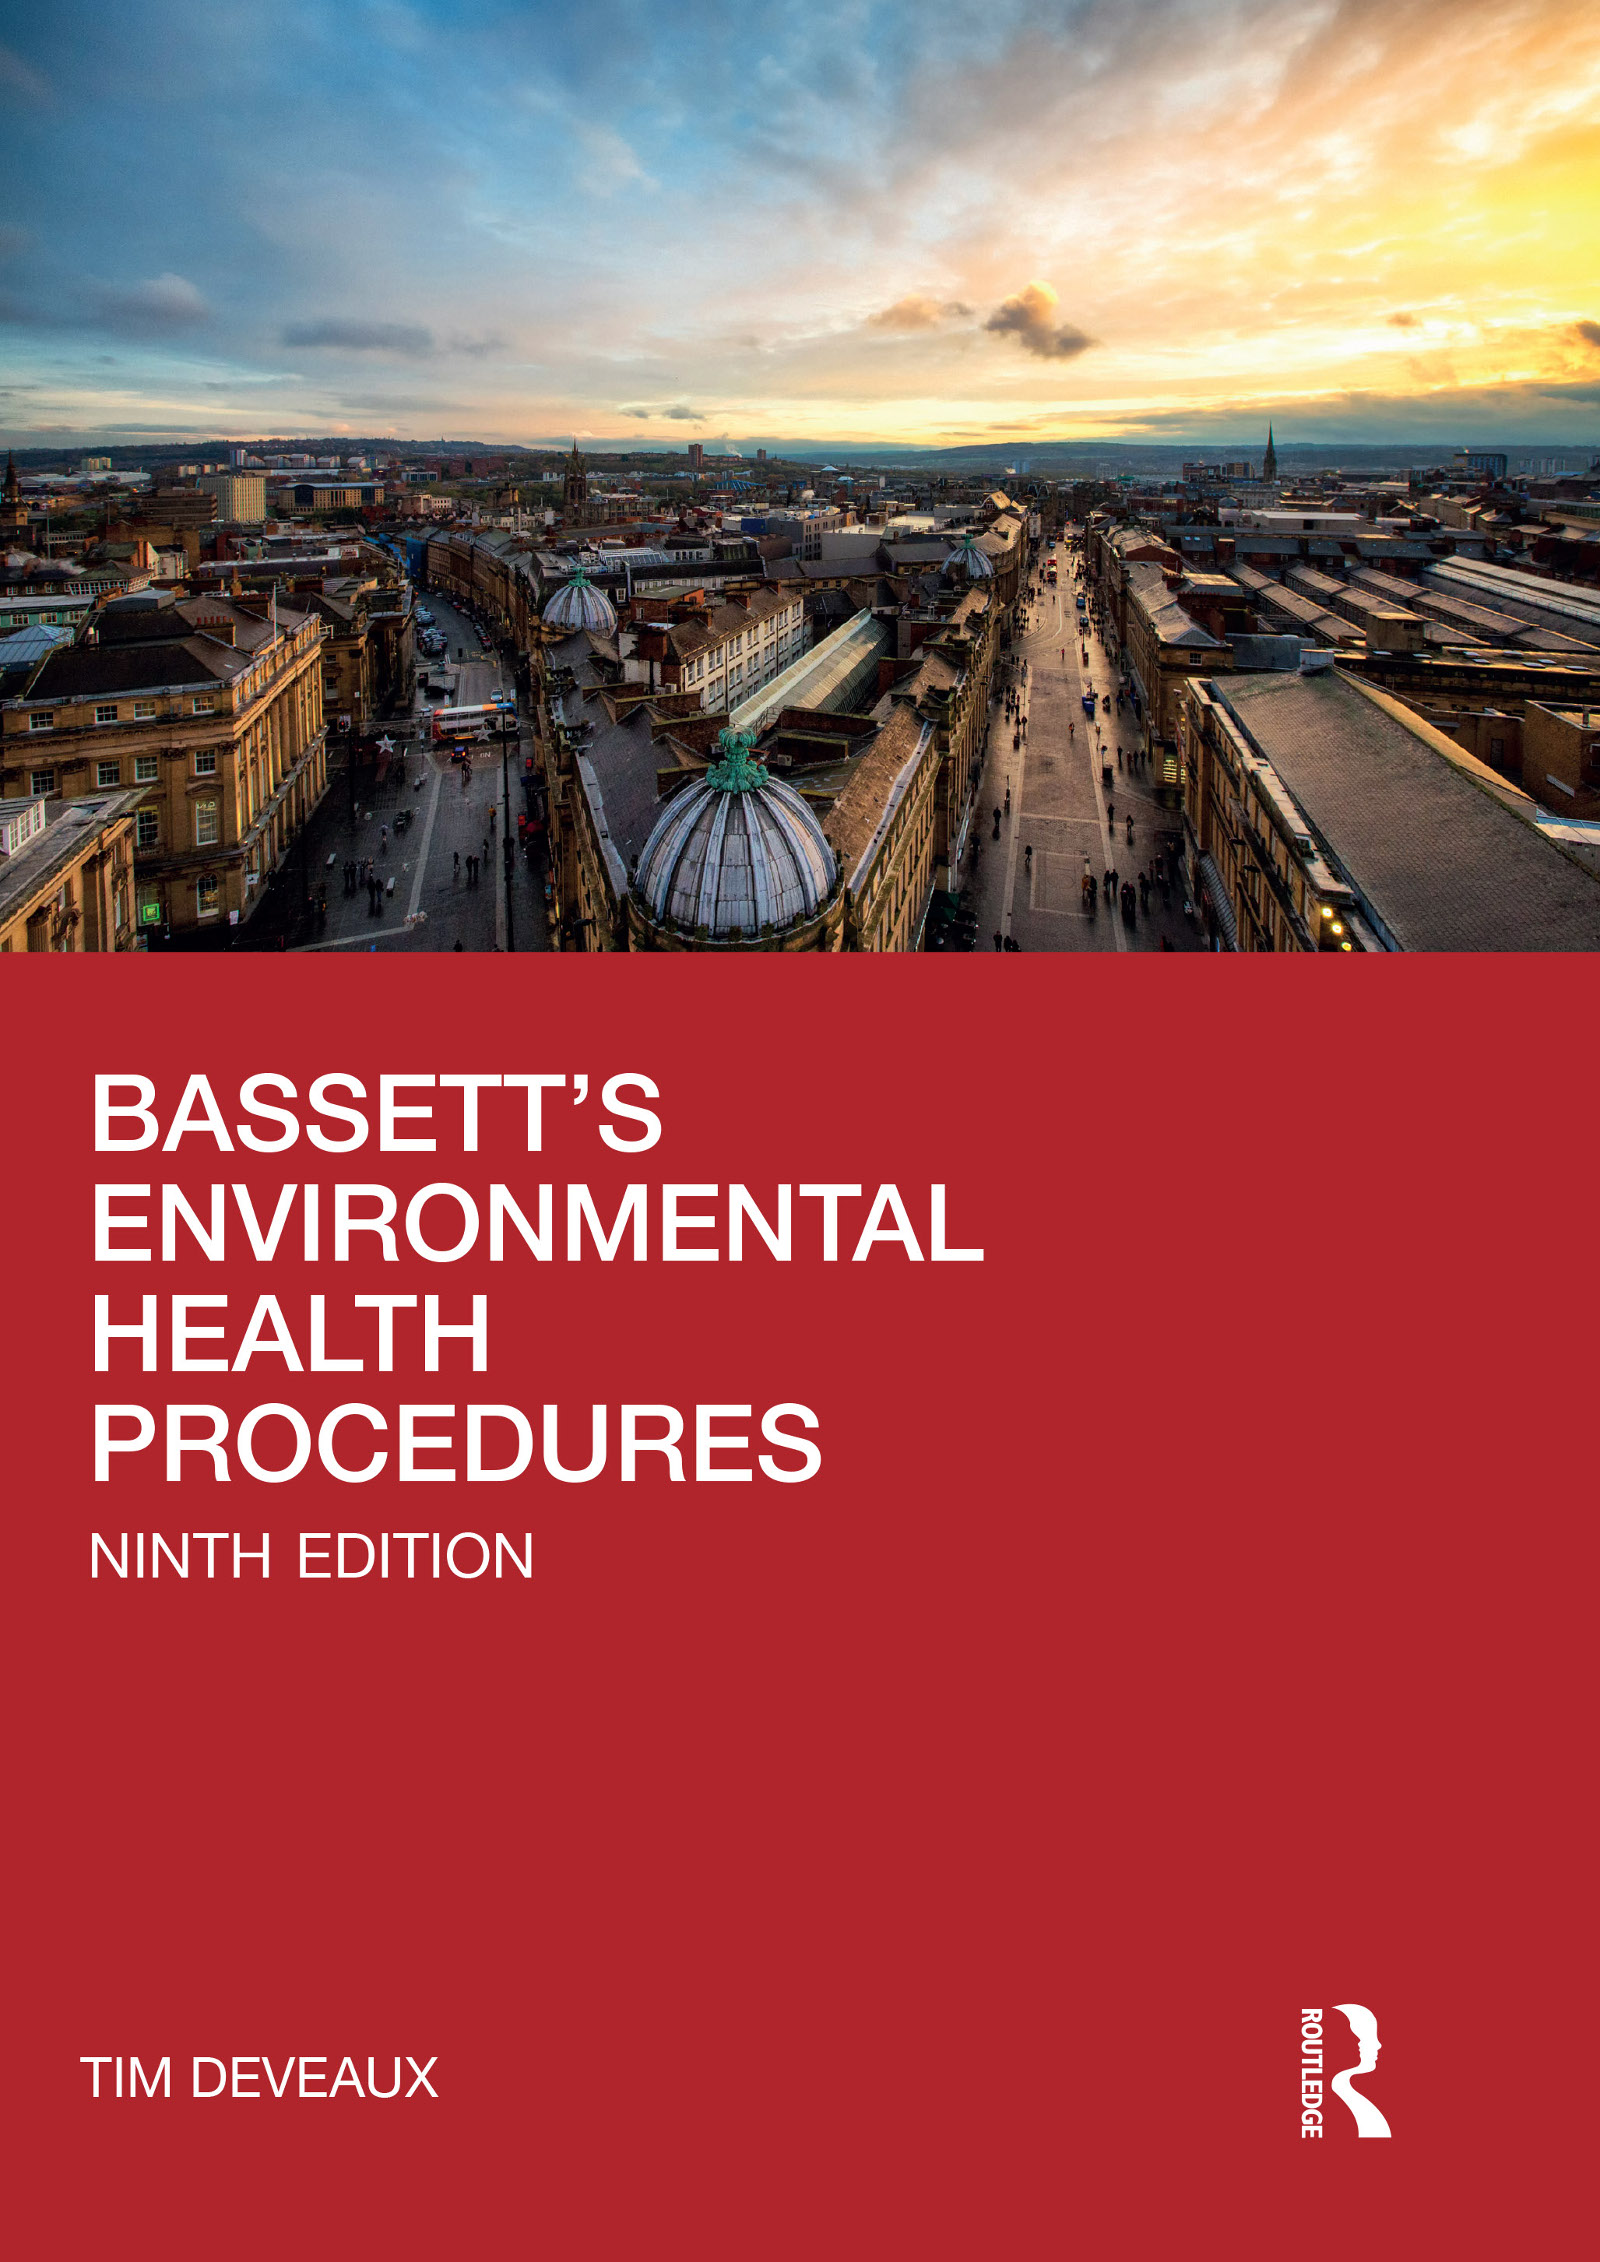 Bassett's-Environmental-Health-Procedures